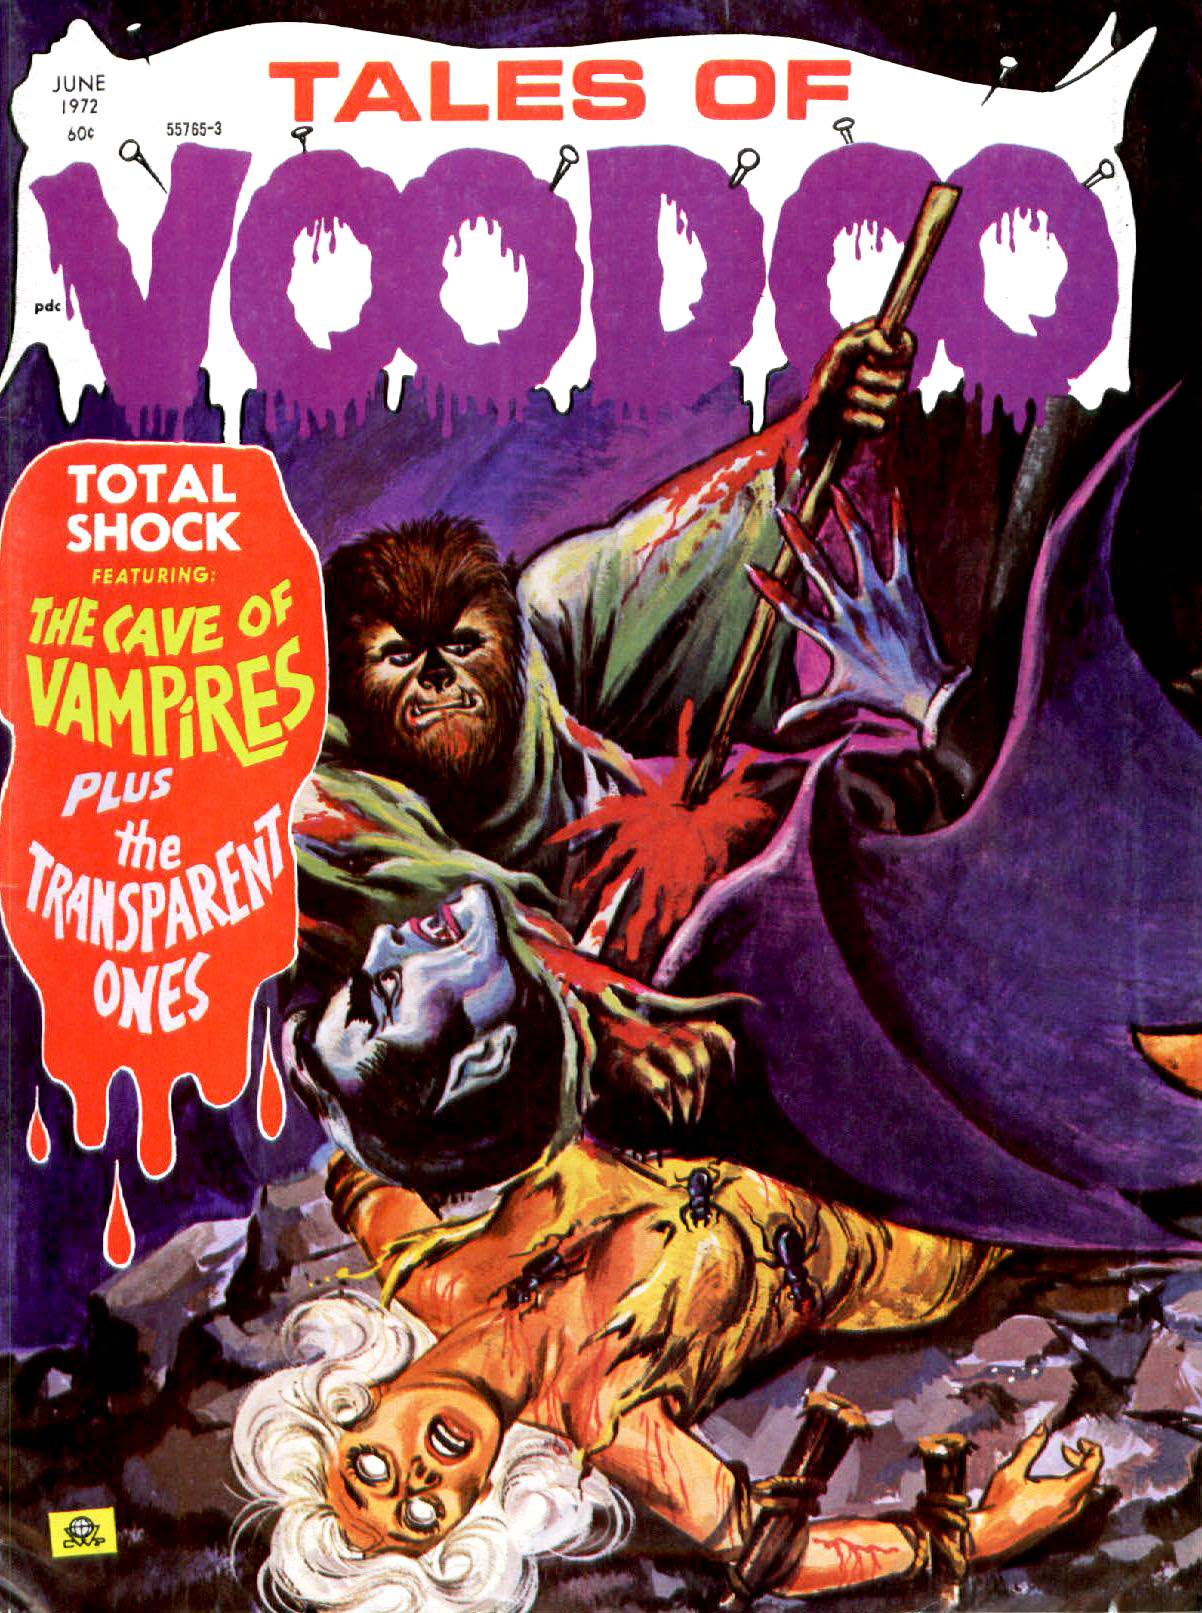 Tales of Voodoo Vol. 5 #4 (Eerie Publications 1972)